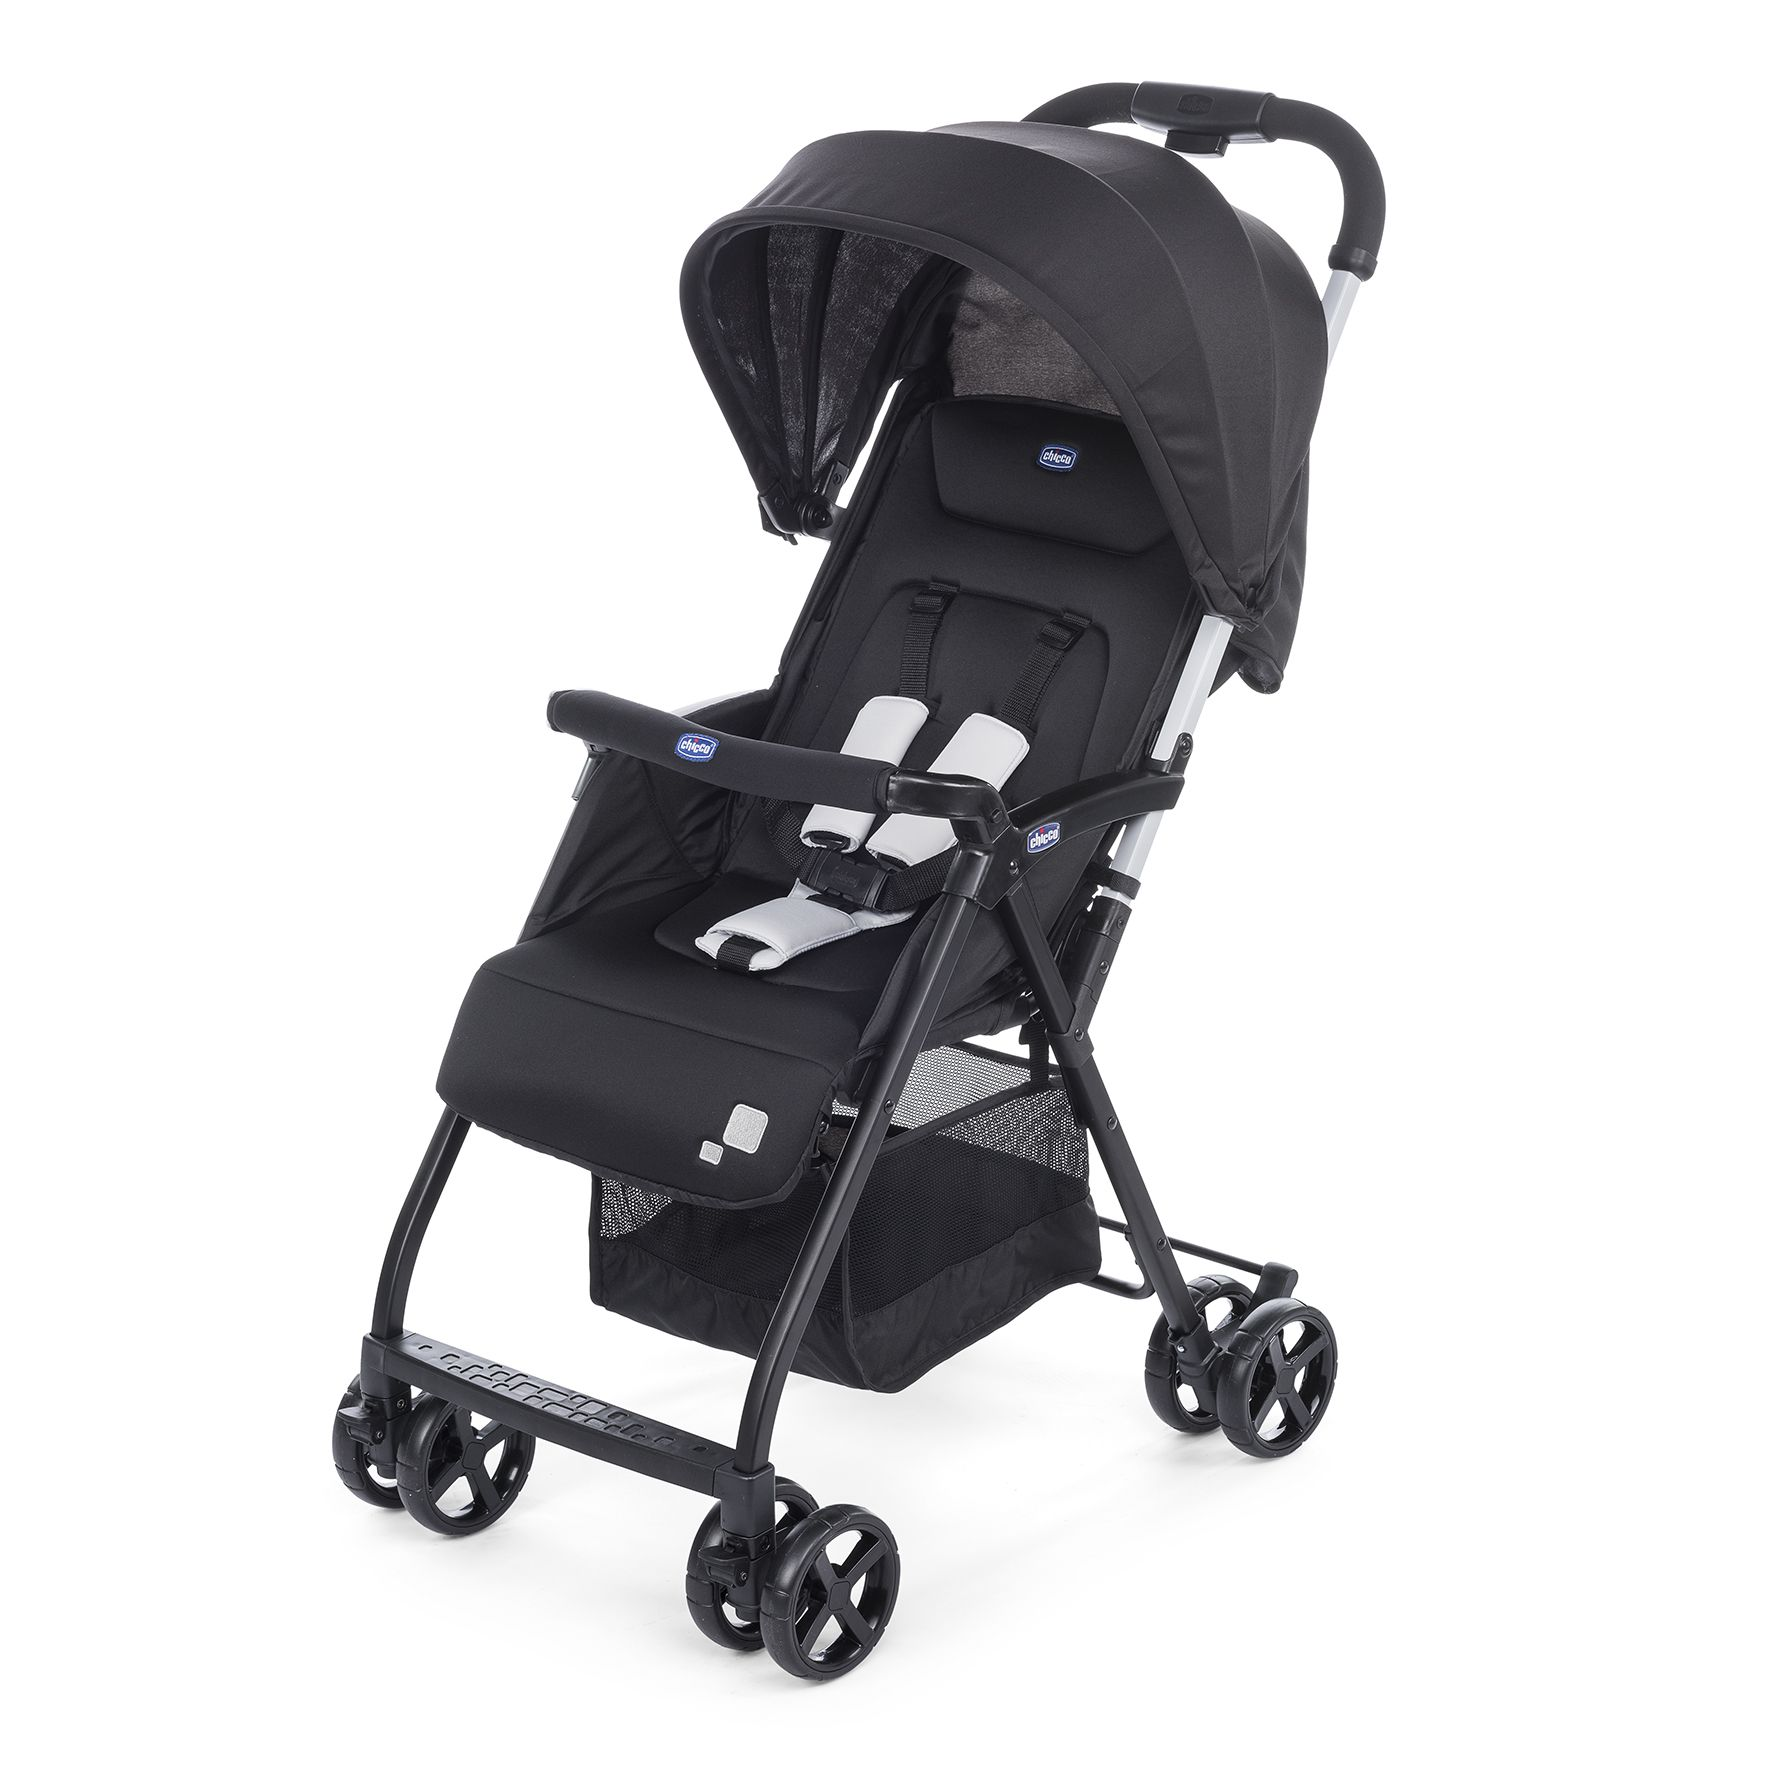 Silla De Paseo Ohlal Chicco 2017 Black Night Comprar En